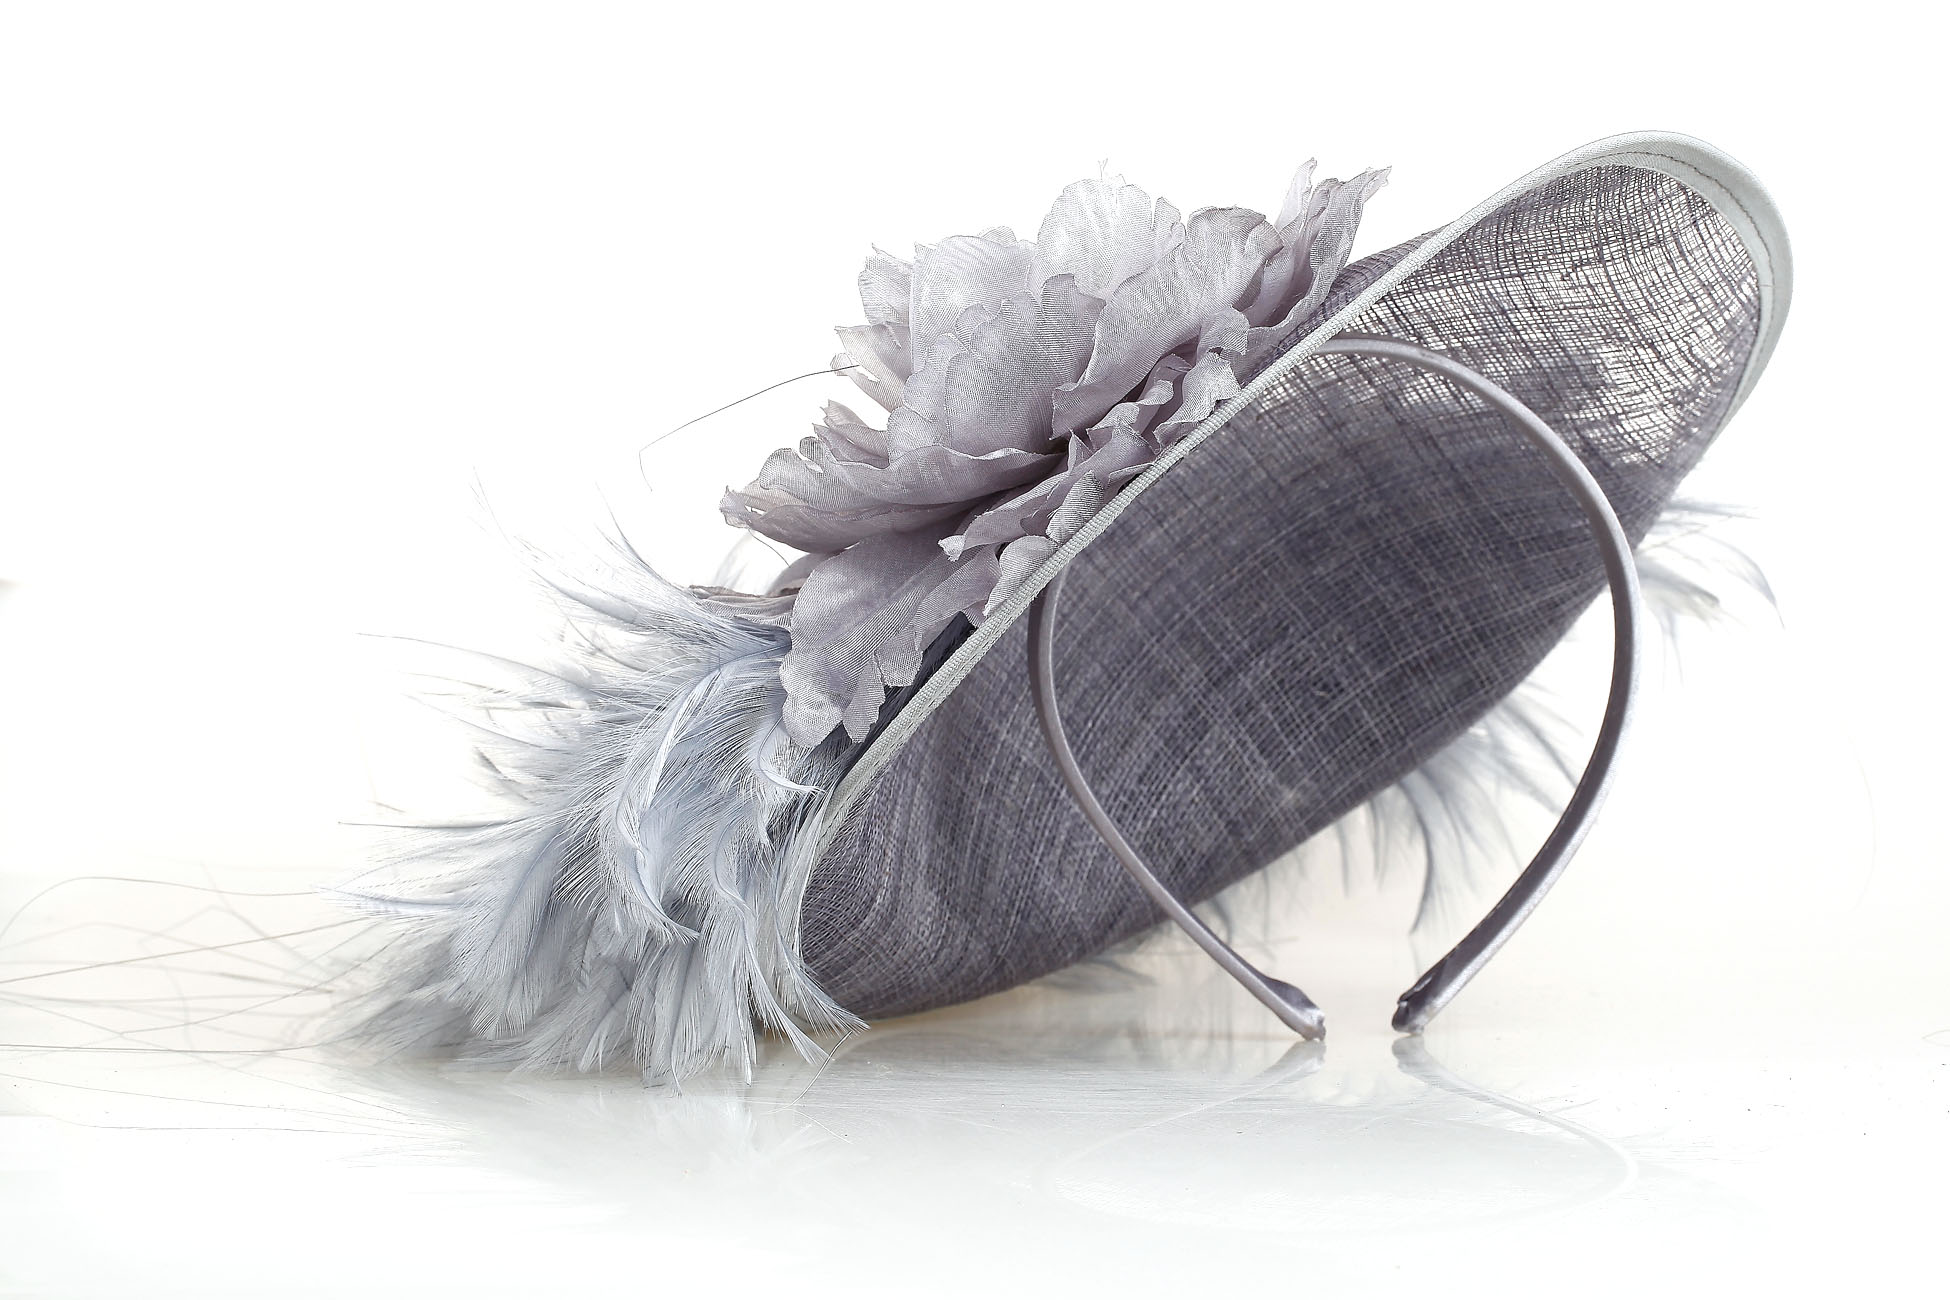 Grey fascinator fascinators amp headpieces mince his words